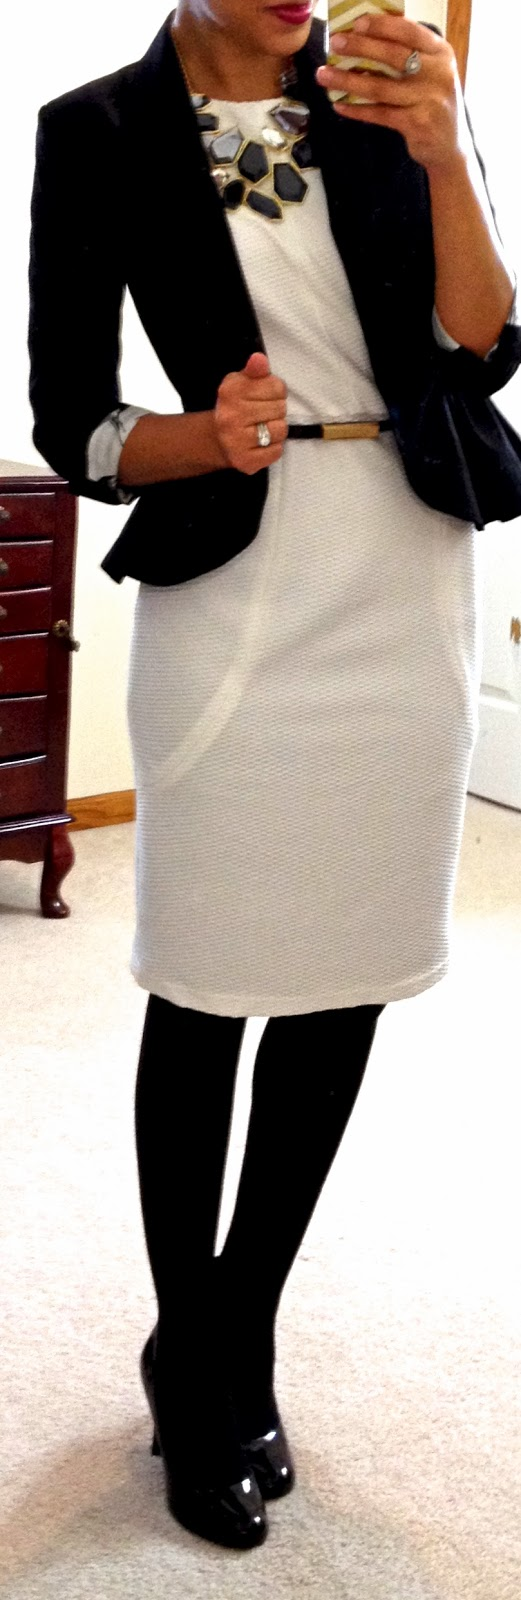 Hello, Gorgeous!: threads. White sheath dress c/o Catch Bliss Boutique  Black peplum jacket  Skinny black belt  Black opaque tights  Black round-toe pumps  Necklace from eBay